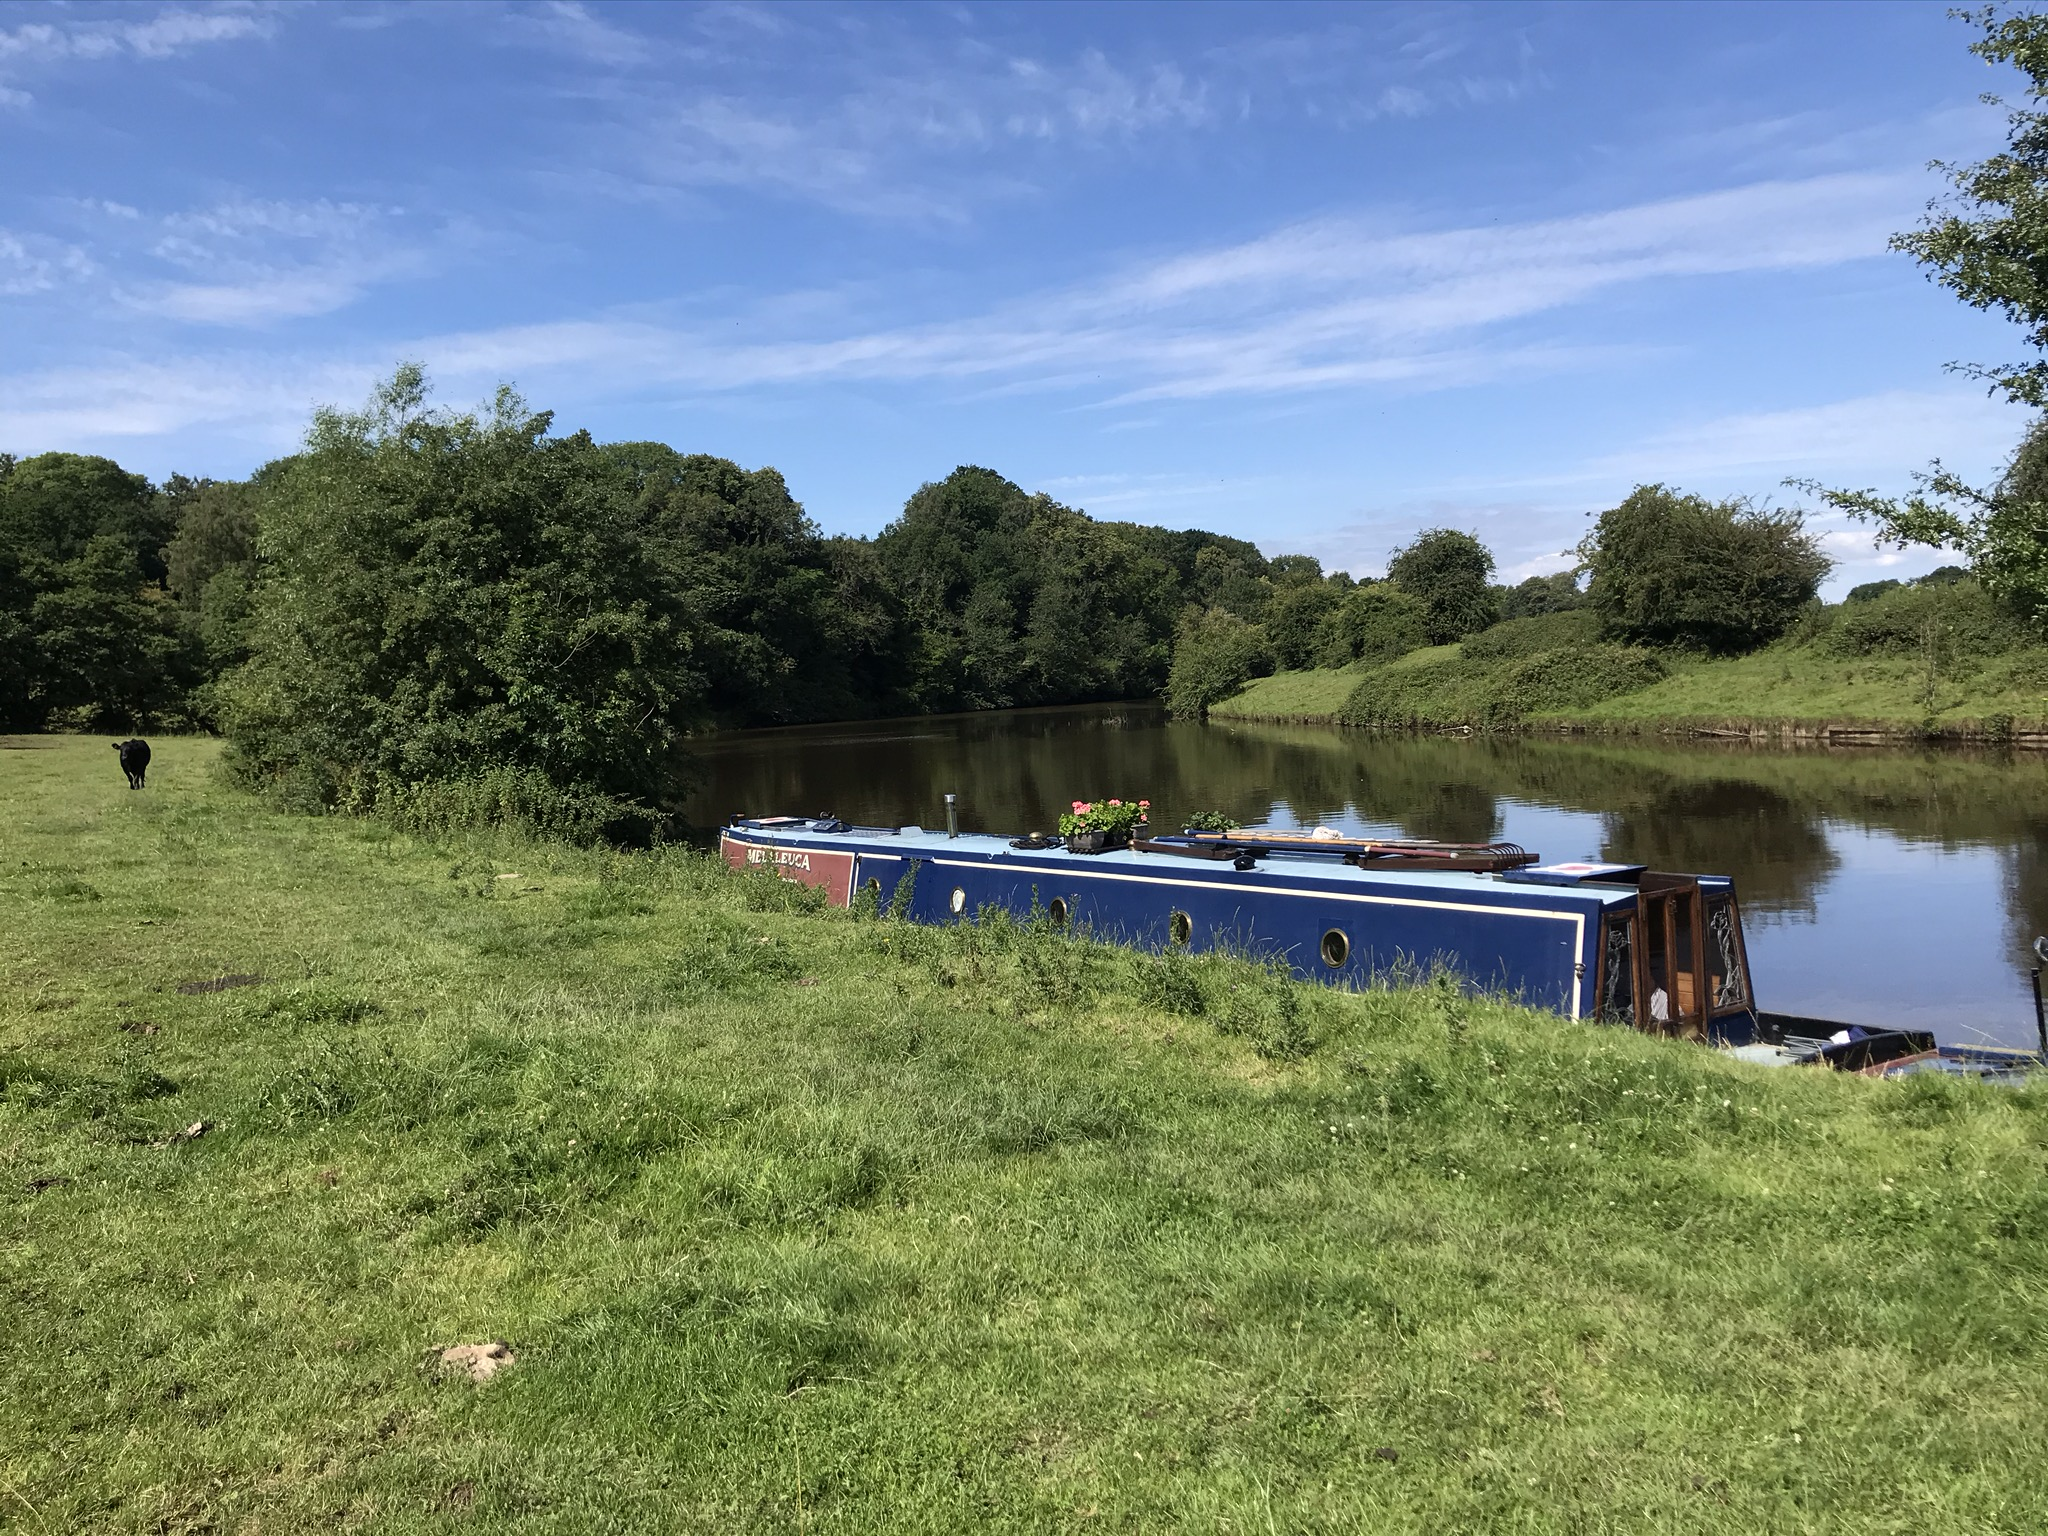 A narrowboat with flowers on the roof moored by a grassy field. The river is wide and smooth.